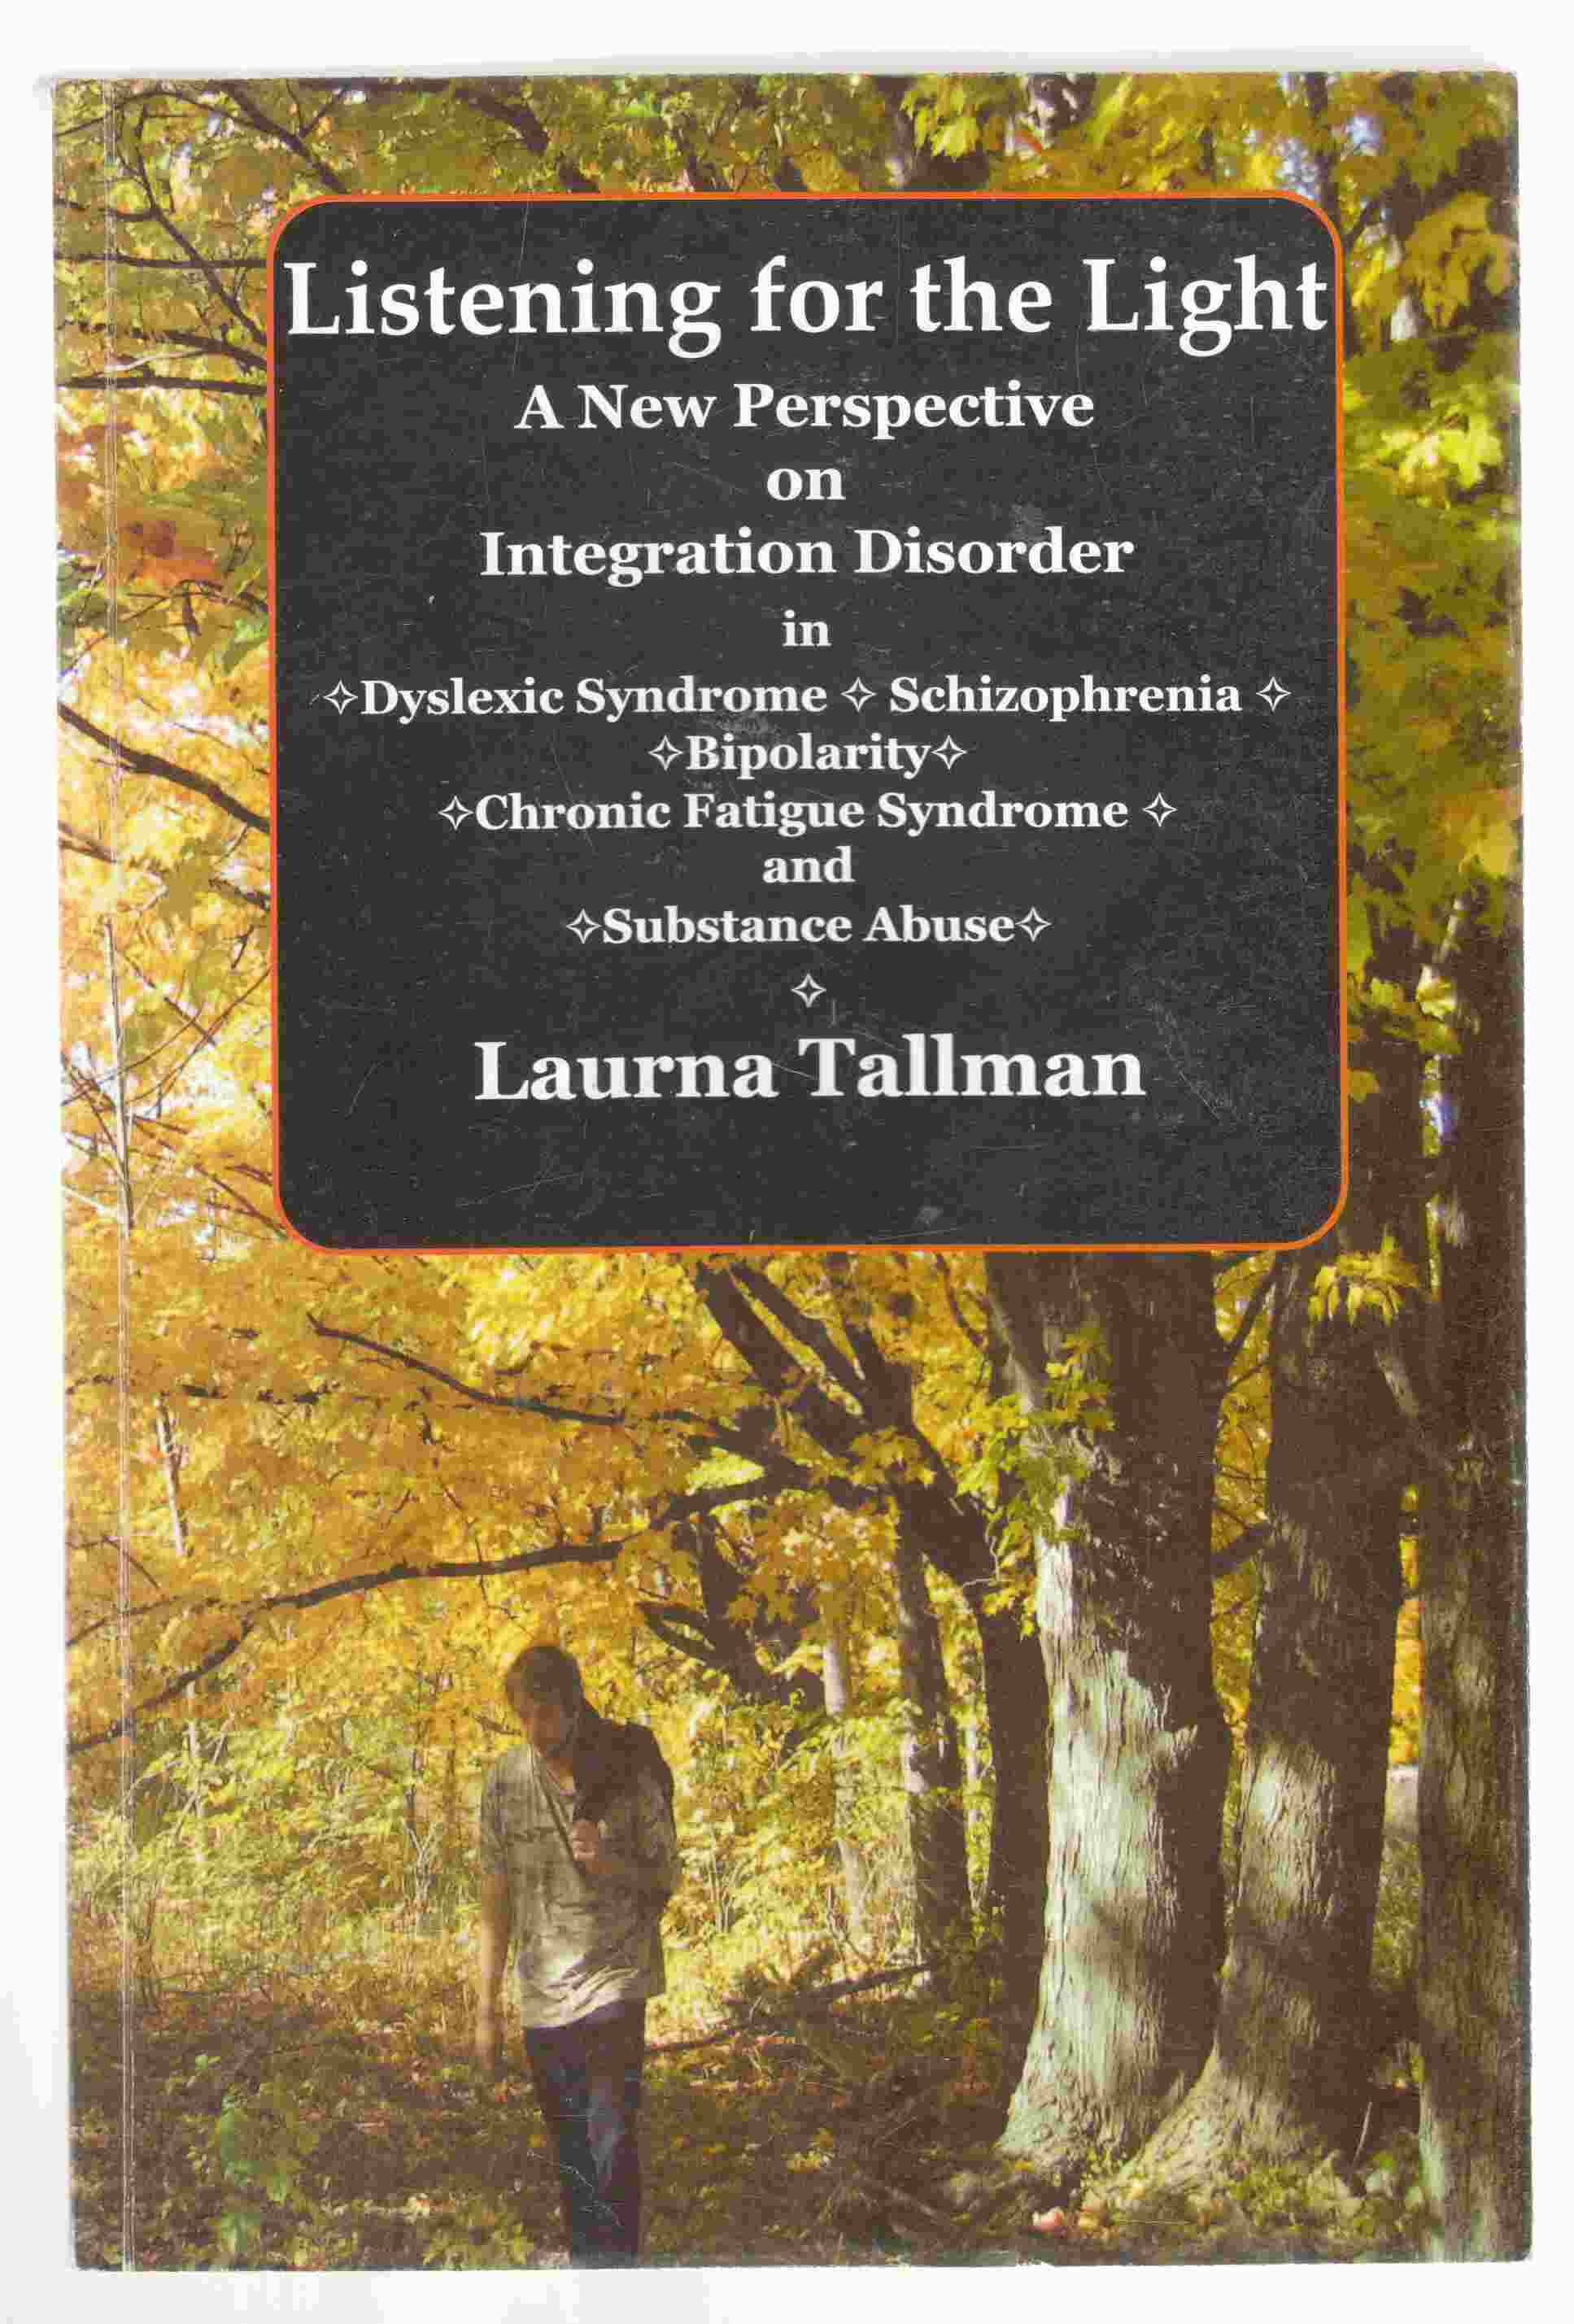 Image for Listening for the Light A New Perspective on Integration Disorder in Dyslexic Syndrome, Schizophrenia, Bipolarity, Chronic Fatigue Syndrome, and Substance Abuse